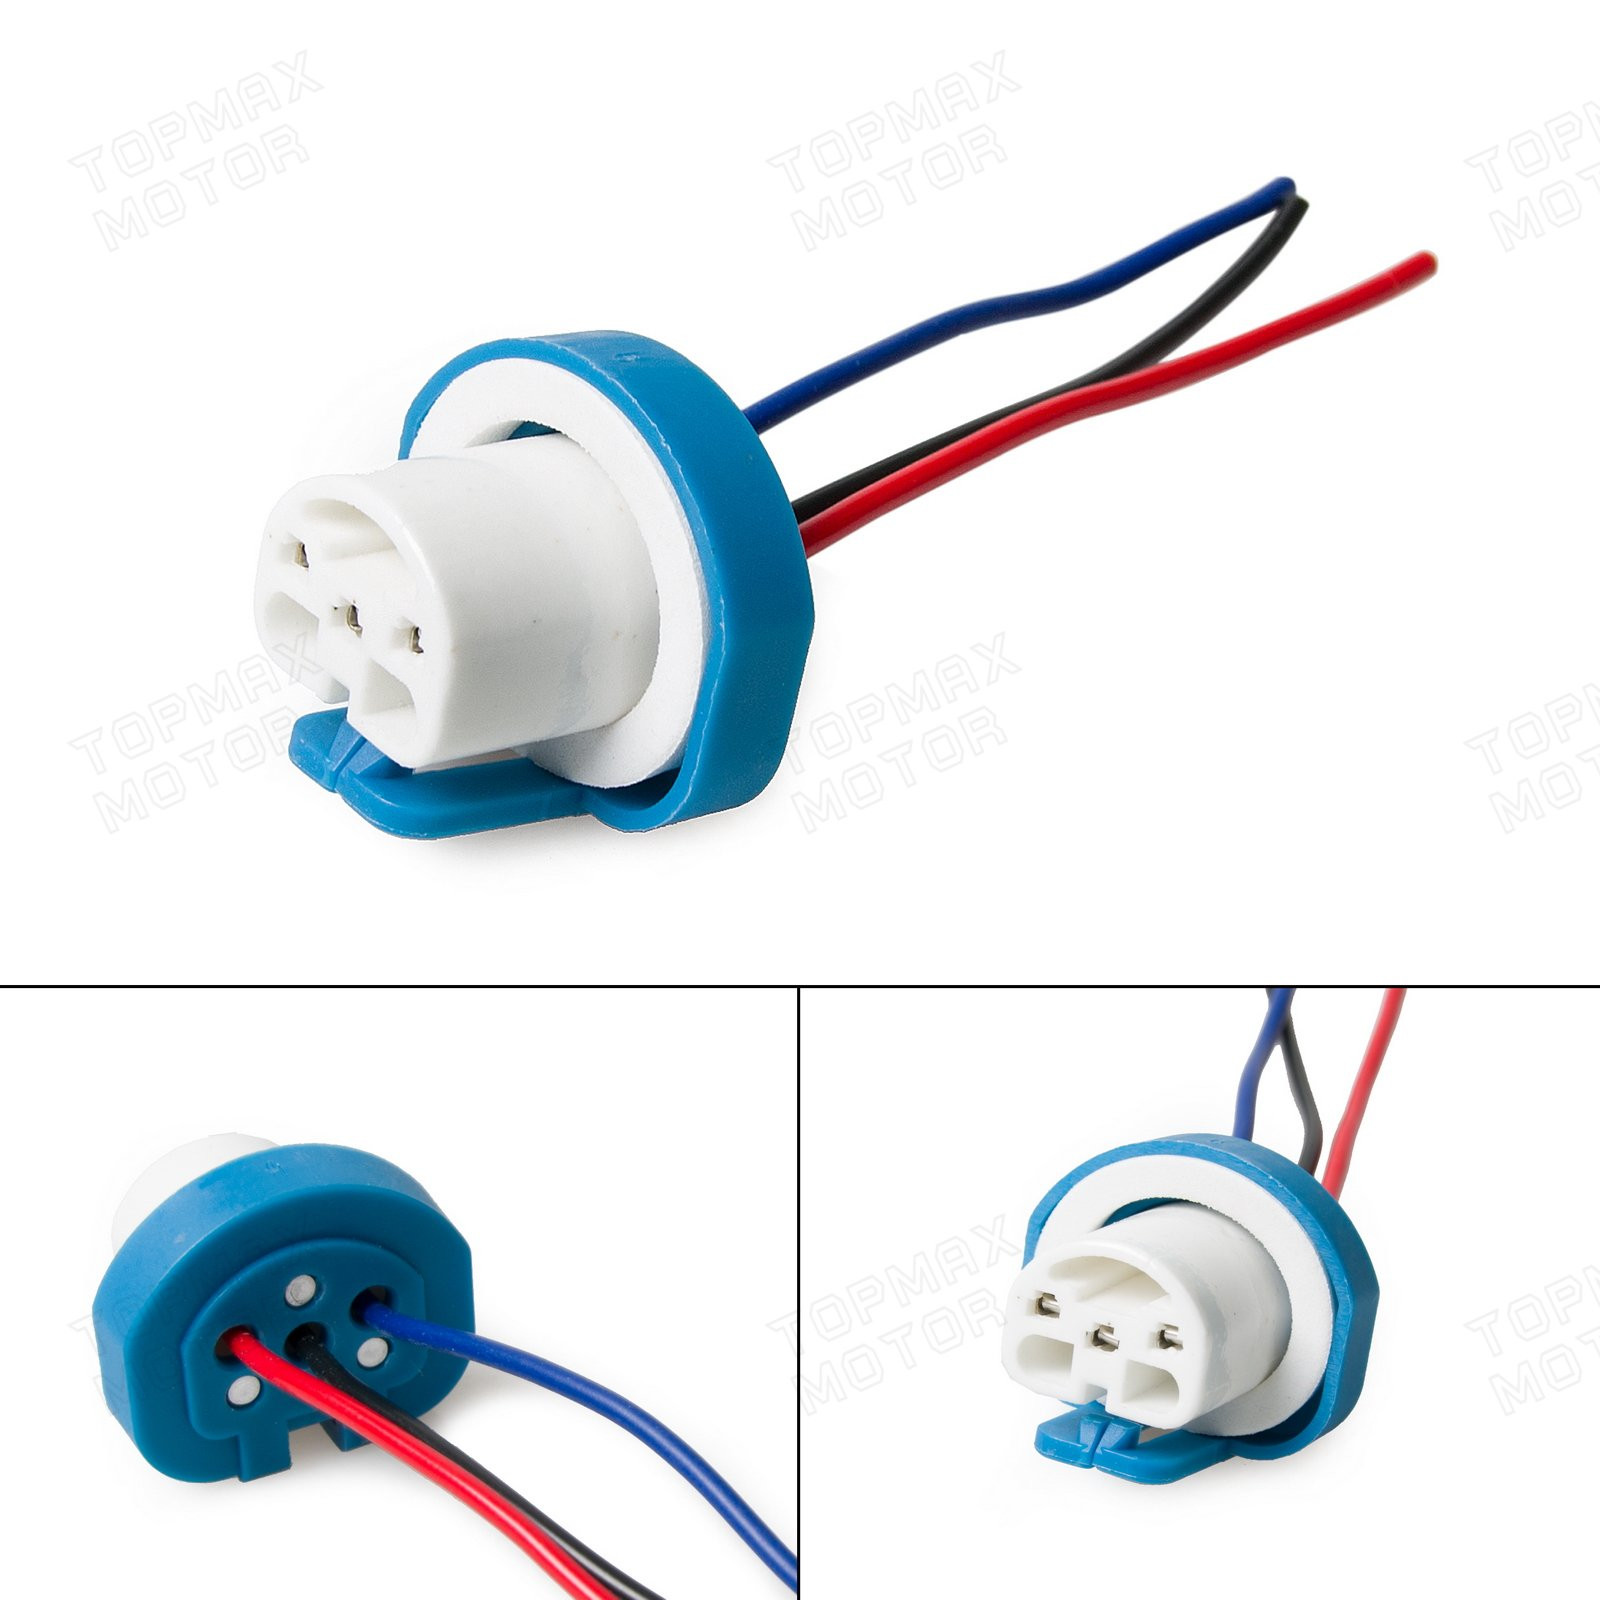 Automotive Headlight Connector Plug 9004 Hb1 9007 Hb5 Lamp Bulb Wire Diagram Connections Socket Gm Ford